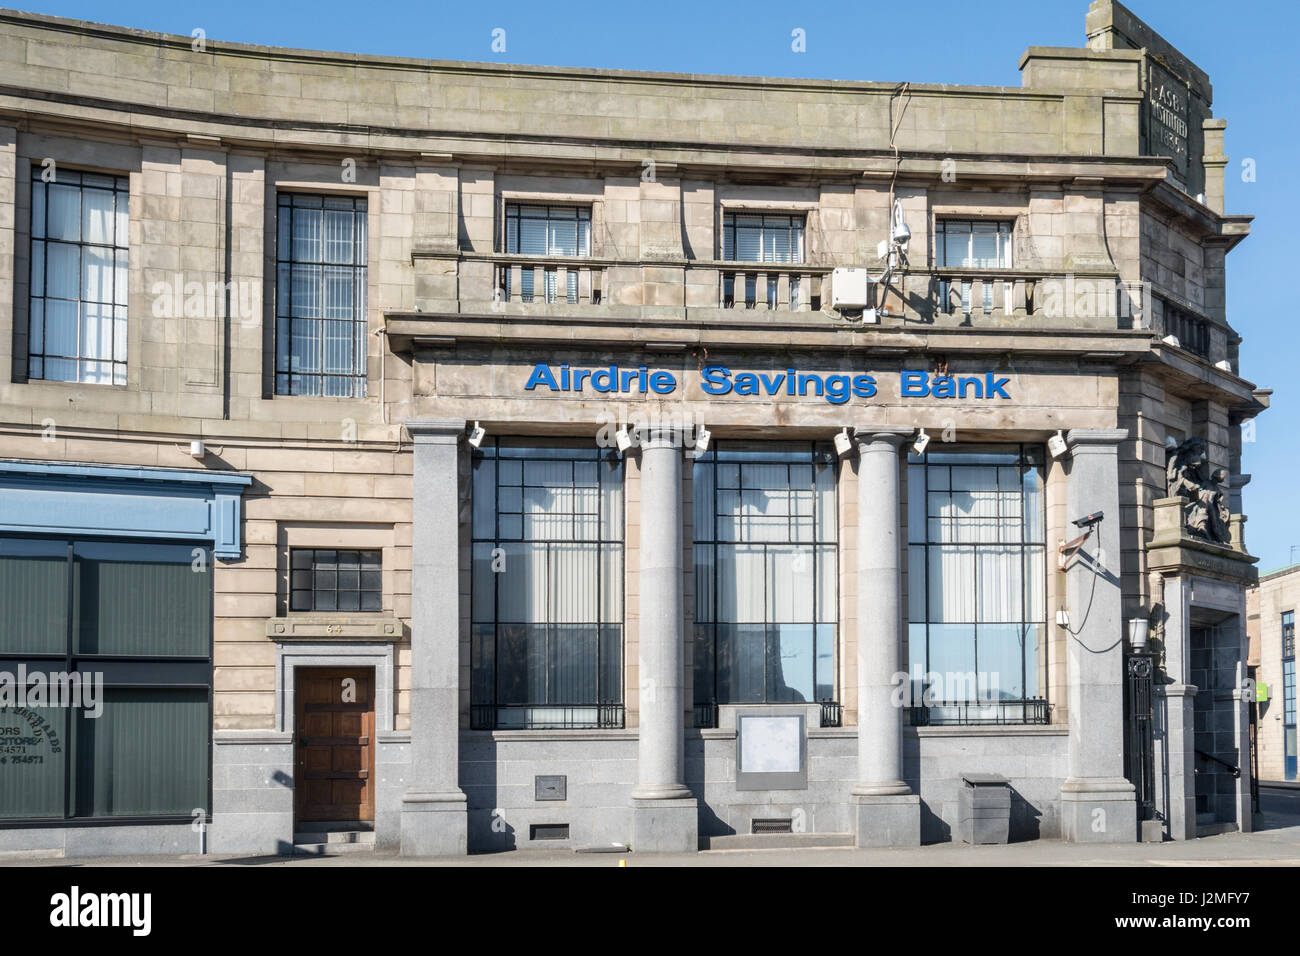 The Airdrie head office of the Airdrie Savings Bank, the last independent   savings bank in the UK, which closed - Stock Image